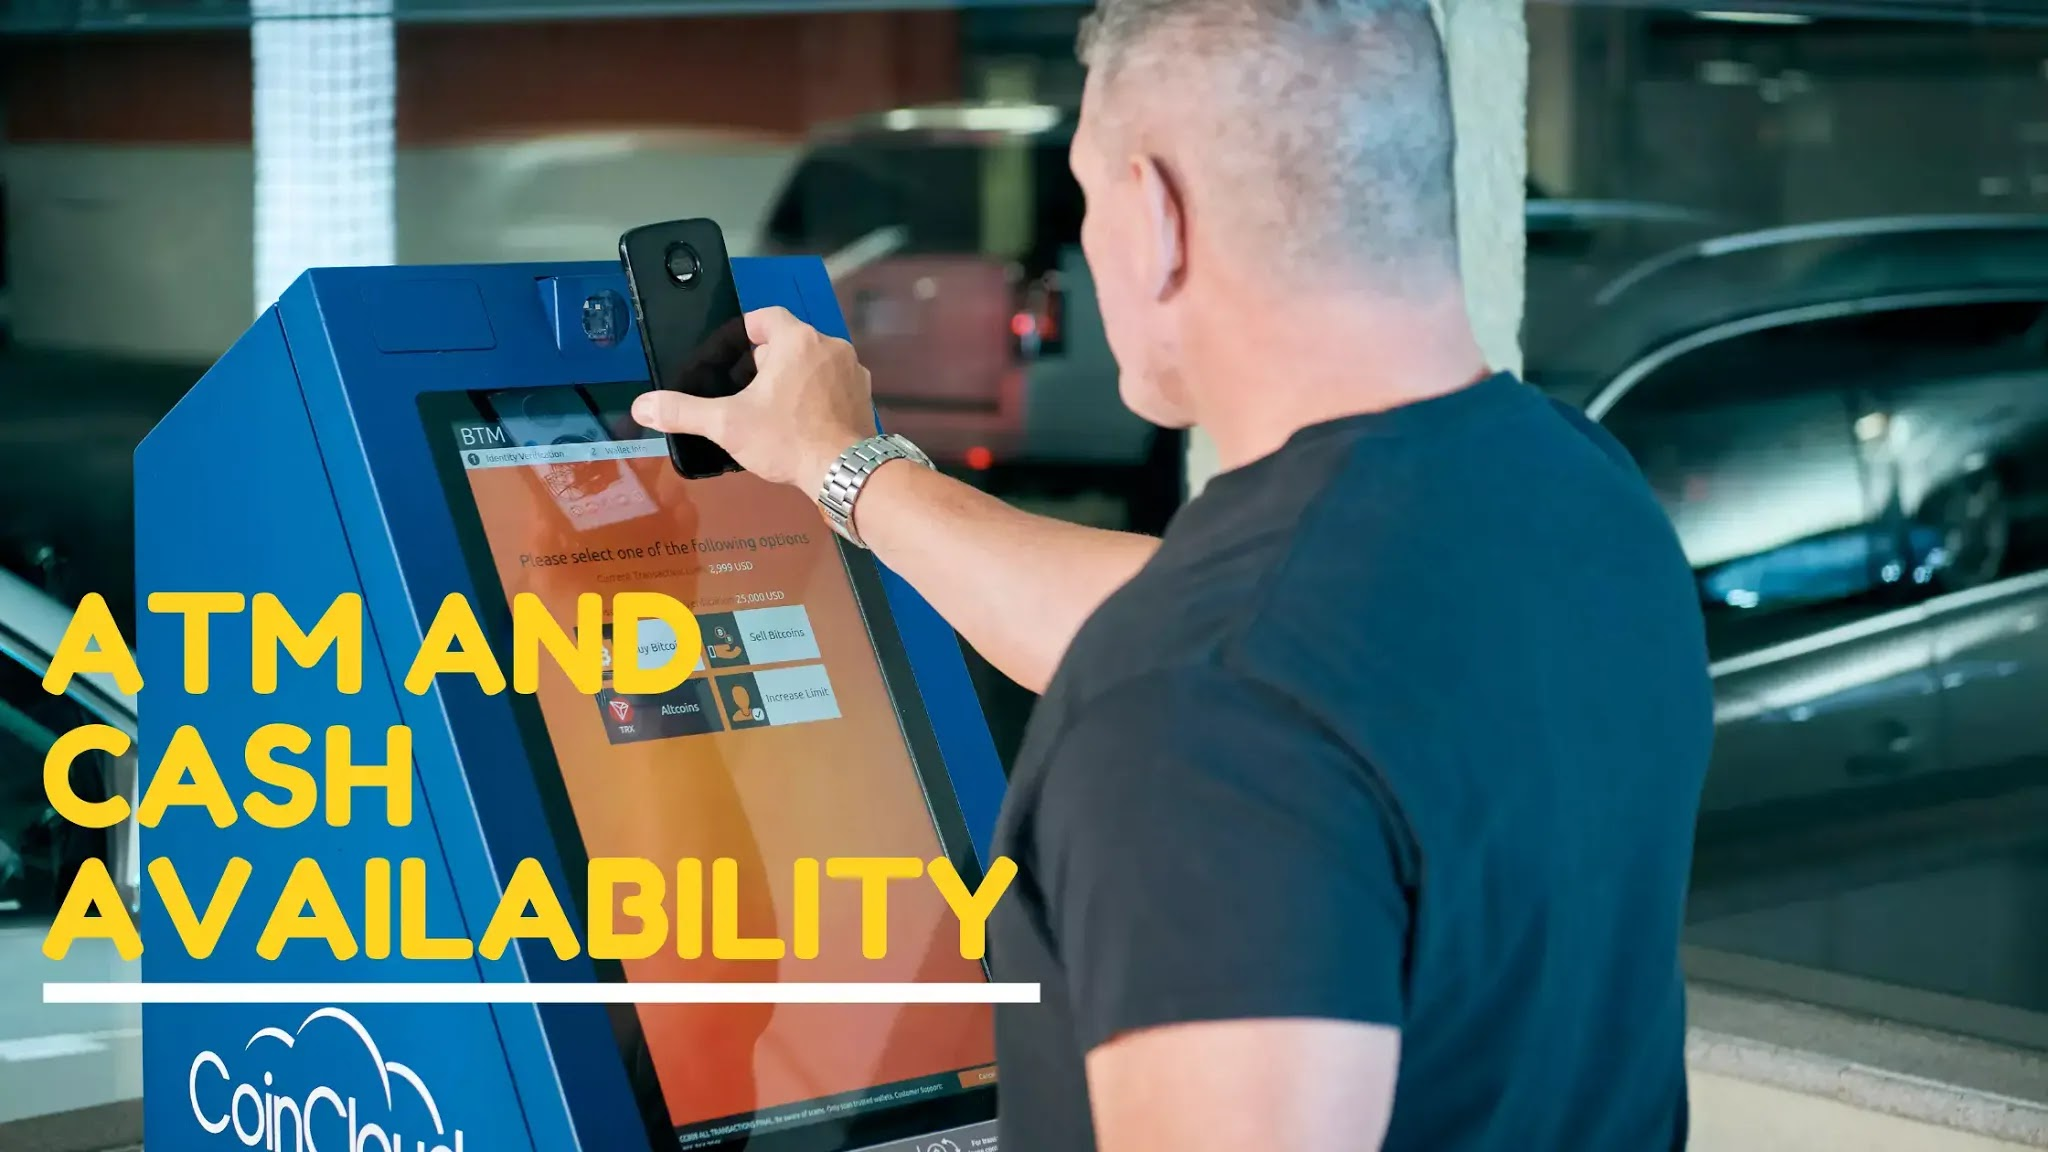 atm-and-cash-availability